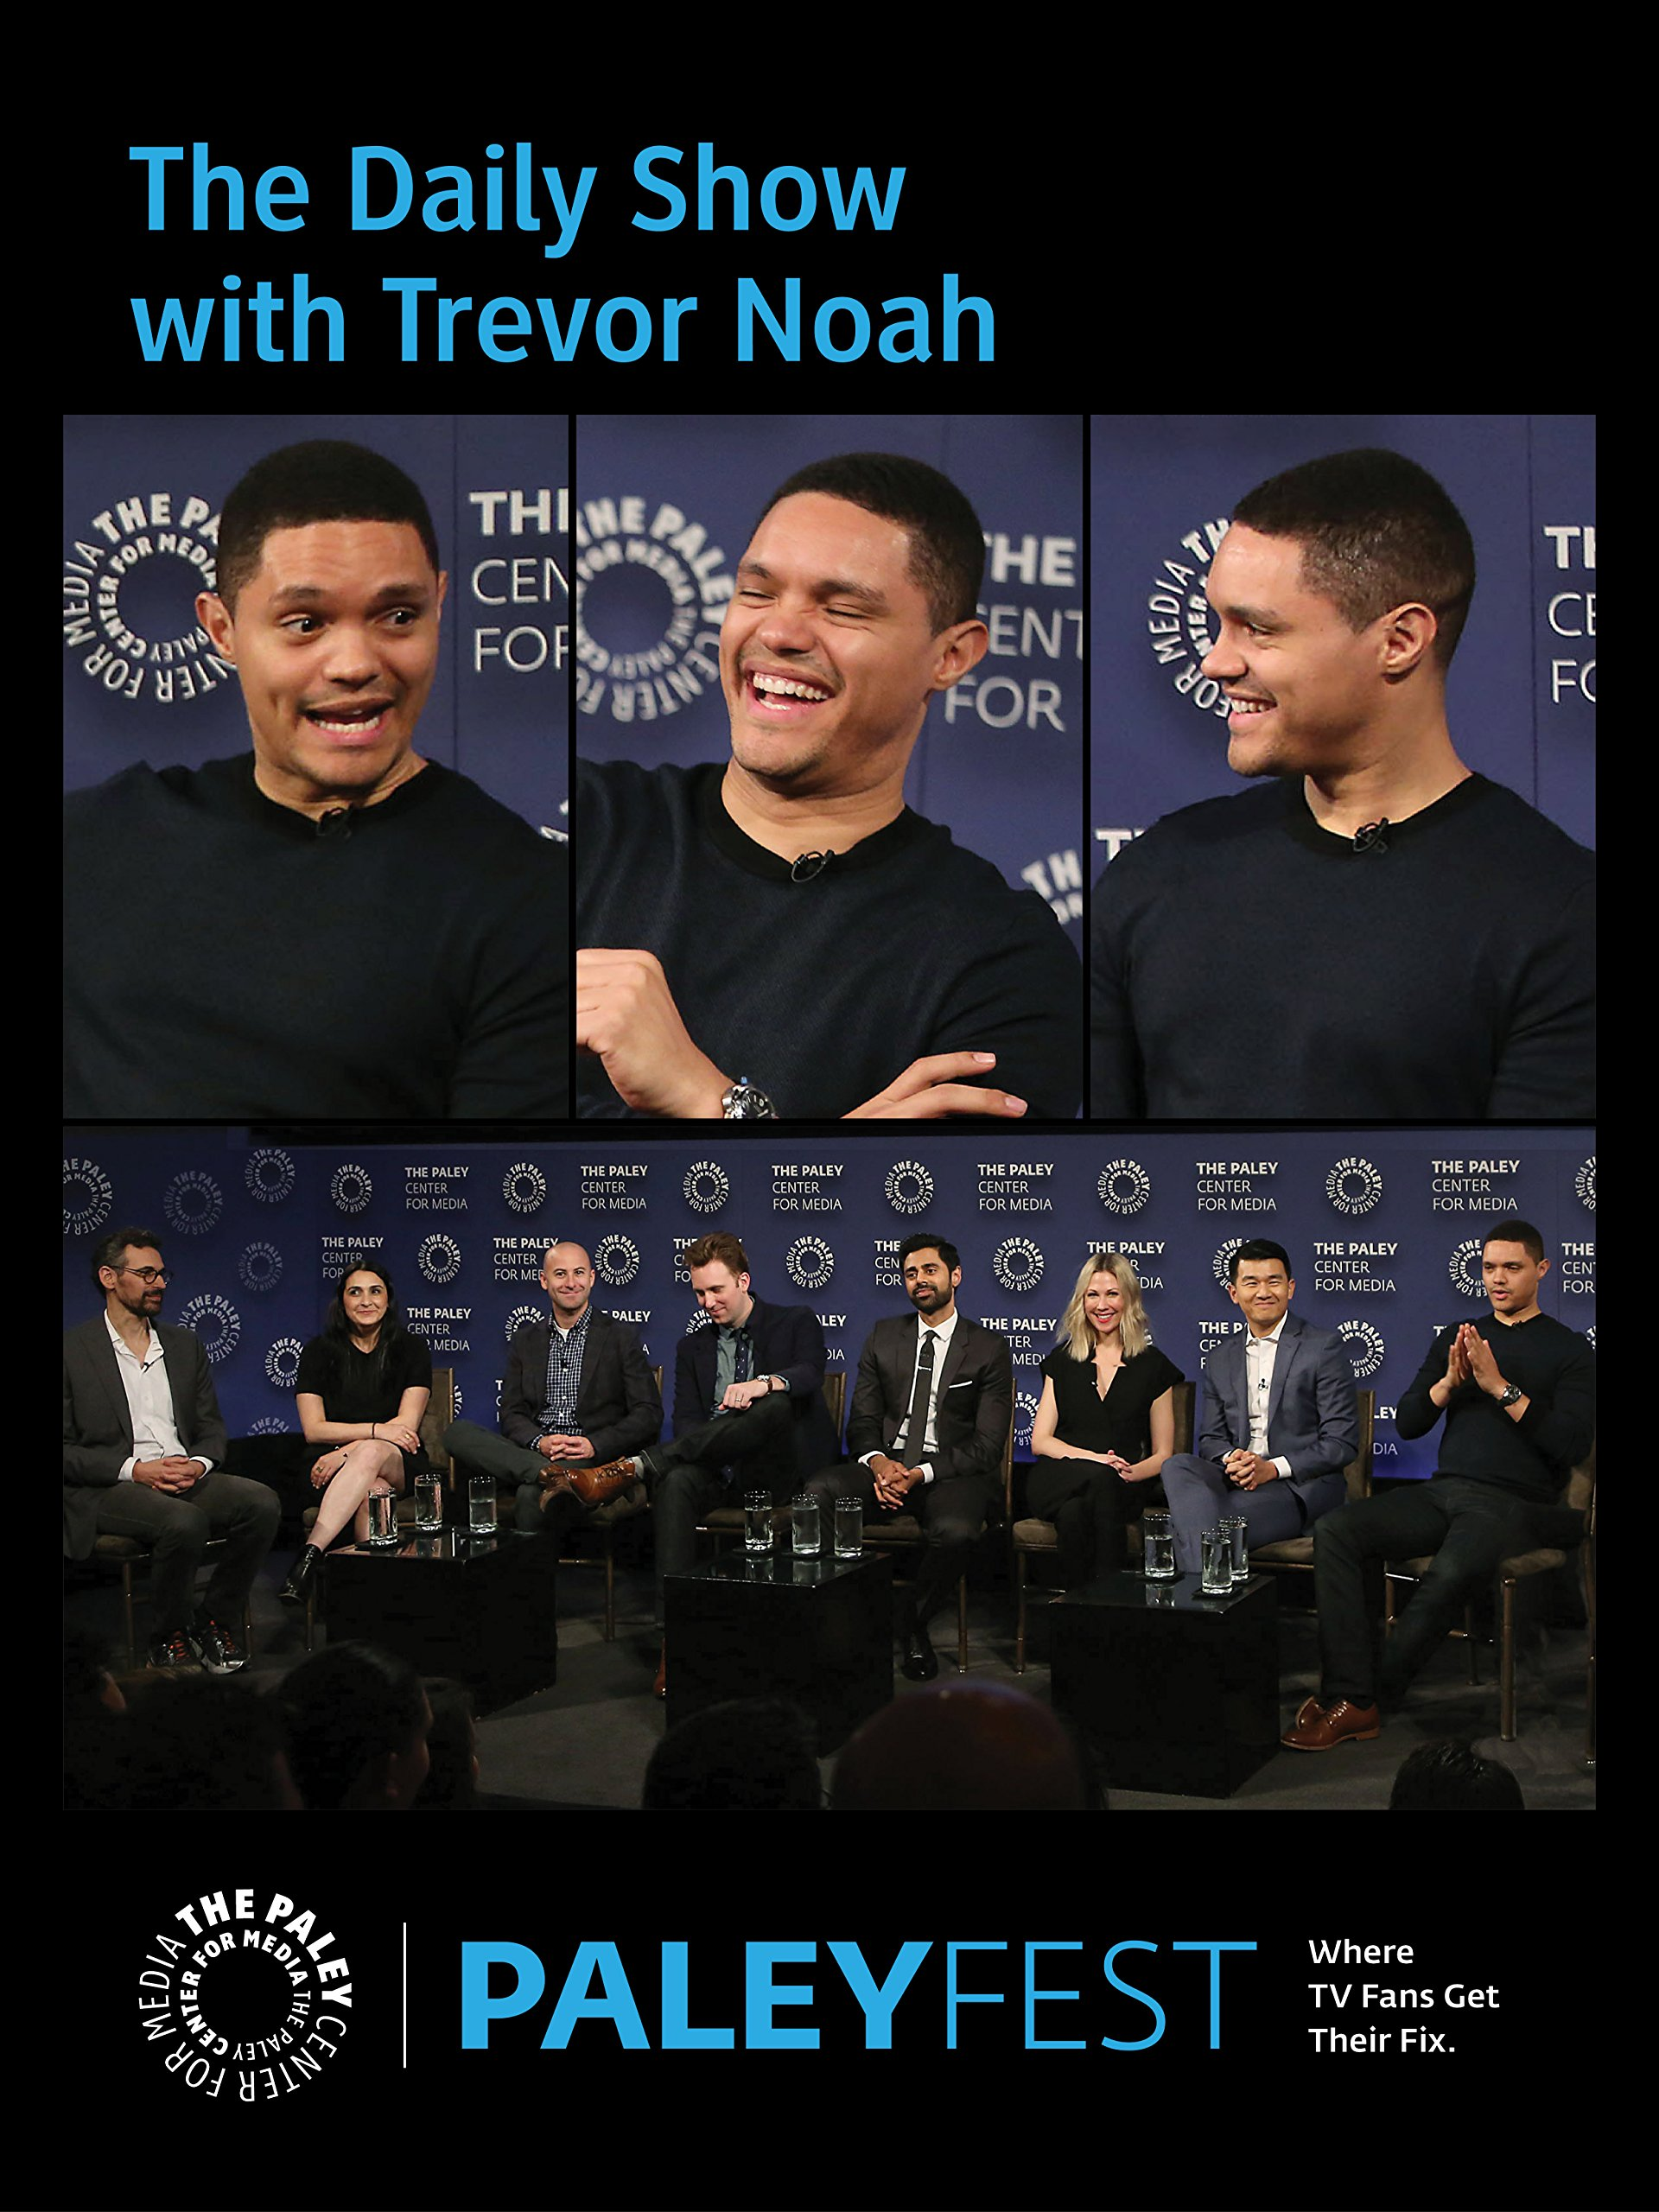 The Daily Show with Trevor Noah PaleyFest